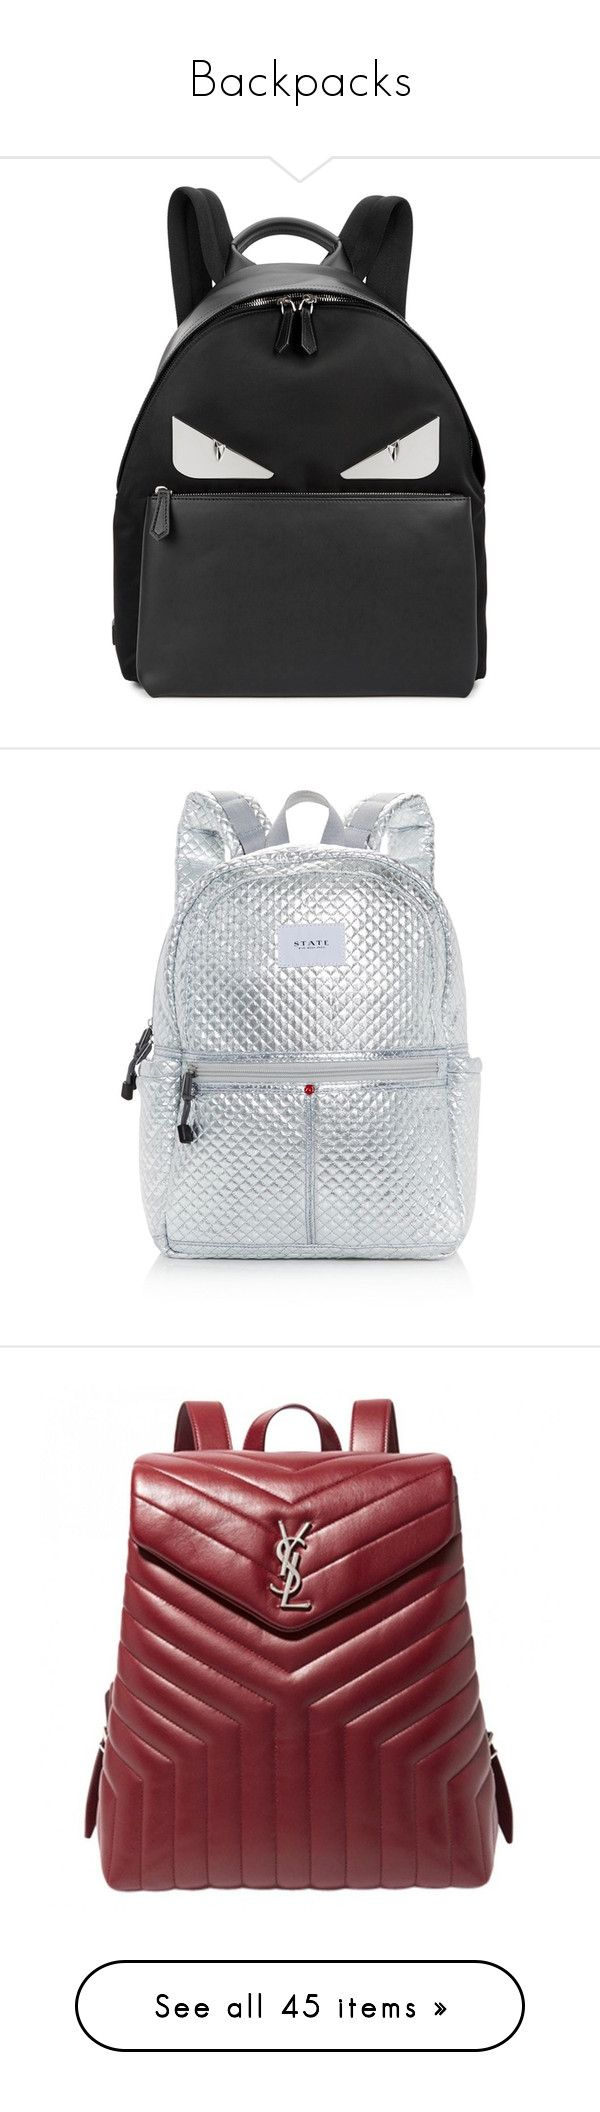 Backpacks by sitinurliyana on Polyvore featuring polyvore, women's fashion, bags, backpacks, leather bags, leather daypack, fendi bags, real leather backpack, leather rucksack, backpack, rucksack bags, knapsack bag, metallic bag, day pack backpack, backpack bags, genuine leather backpack, genuine leather bags, day pack rucksack, gamiss, daypack bag, juicy couture backpack, zip backpack, juicy couture bags, brown, gucci bags, brown leather bag, pocket backpack, laptop pocket backpack…